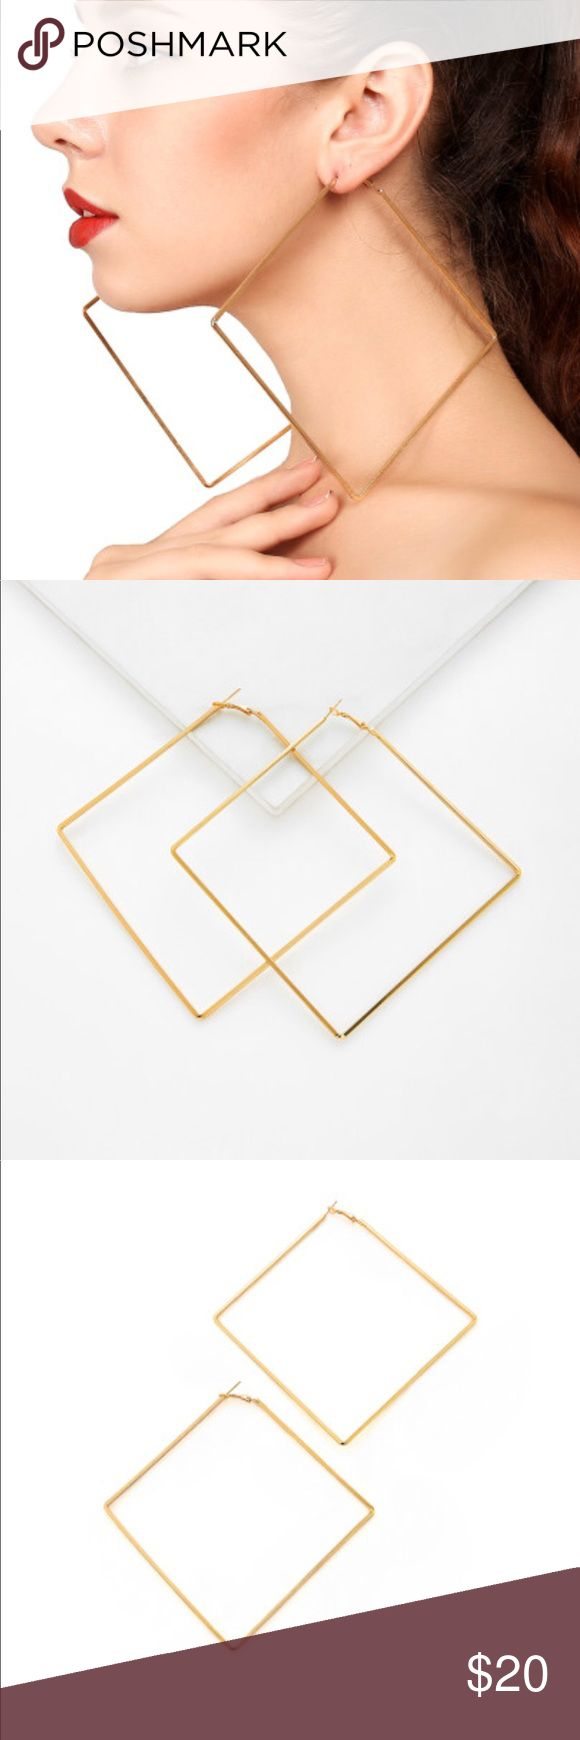 ⭐️Geometric Gold Hoop Earrings -New In Package  -these earring are really solid and do not feel or look cheap at all ! High Quality Costume Jewelry  -Gold Plated Alloy  MAKE ME AN OFFER  BUNDLE AND SAVE ❤️ Jewelry Earrings